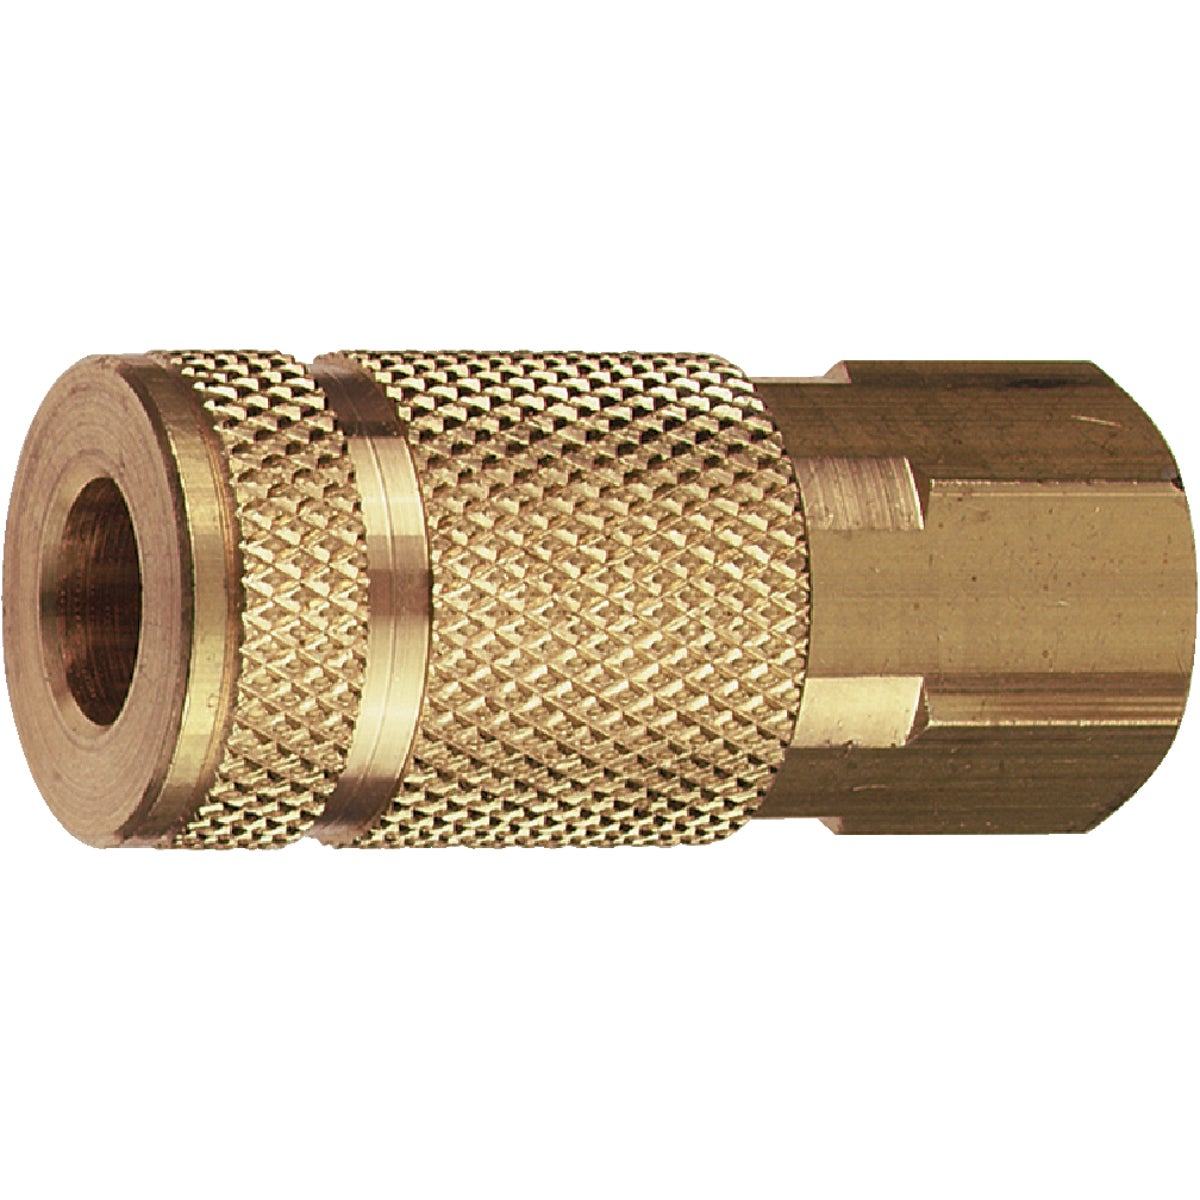 "1/4""ARO BK FMALE COUPLER - 13-334 by Plews  Lubrimatic"